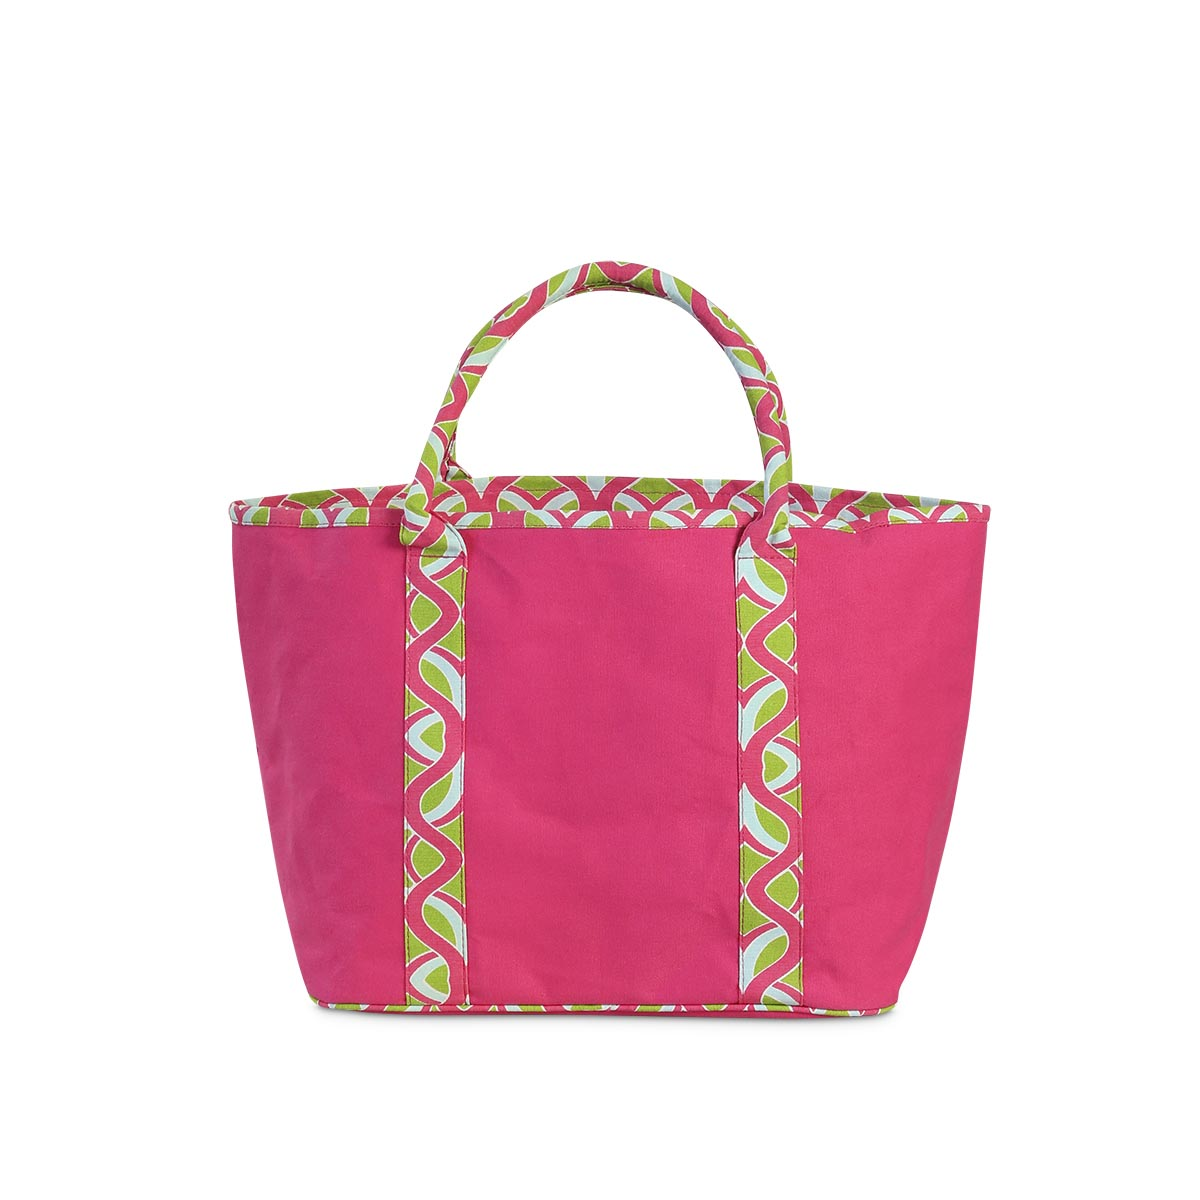 tango twist pink traveler bag